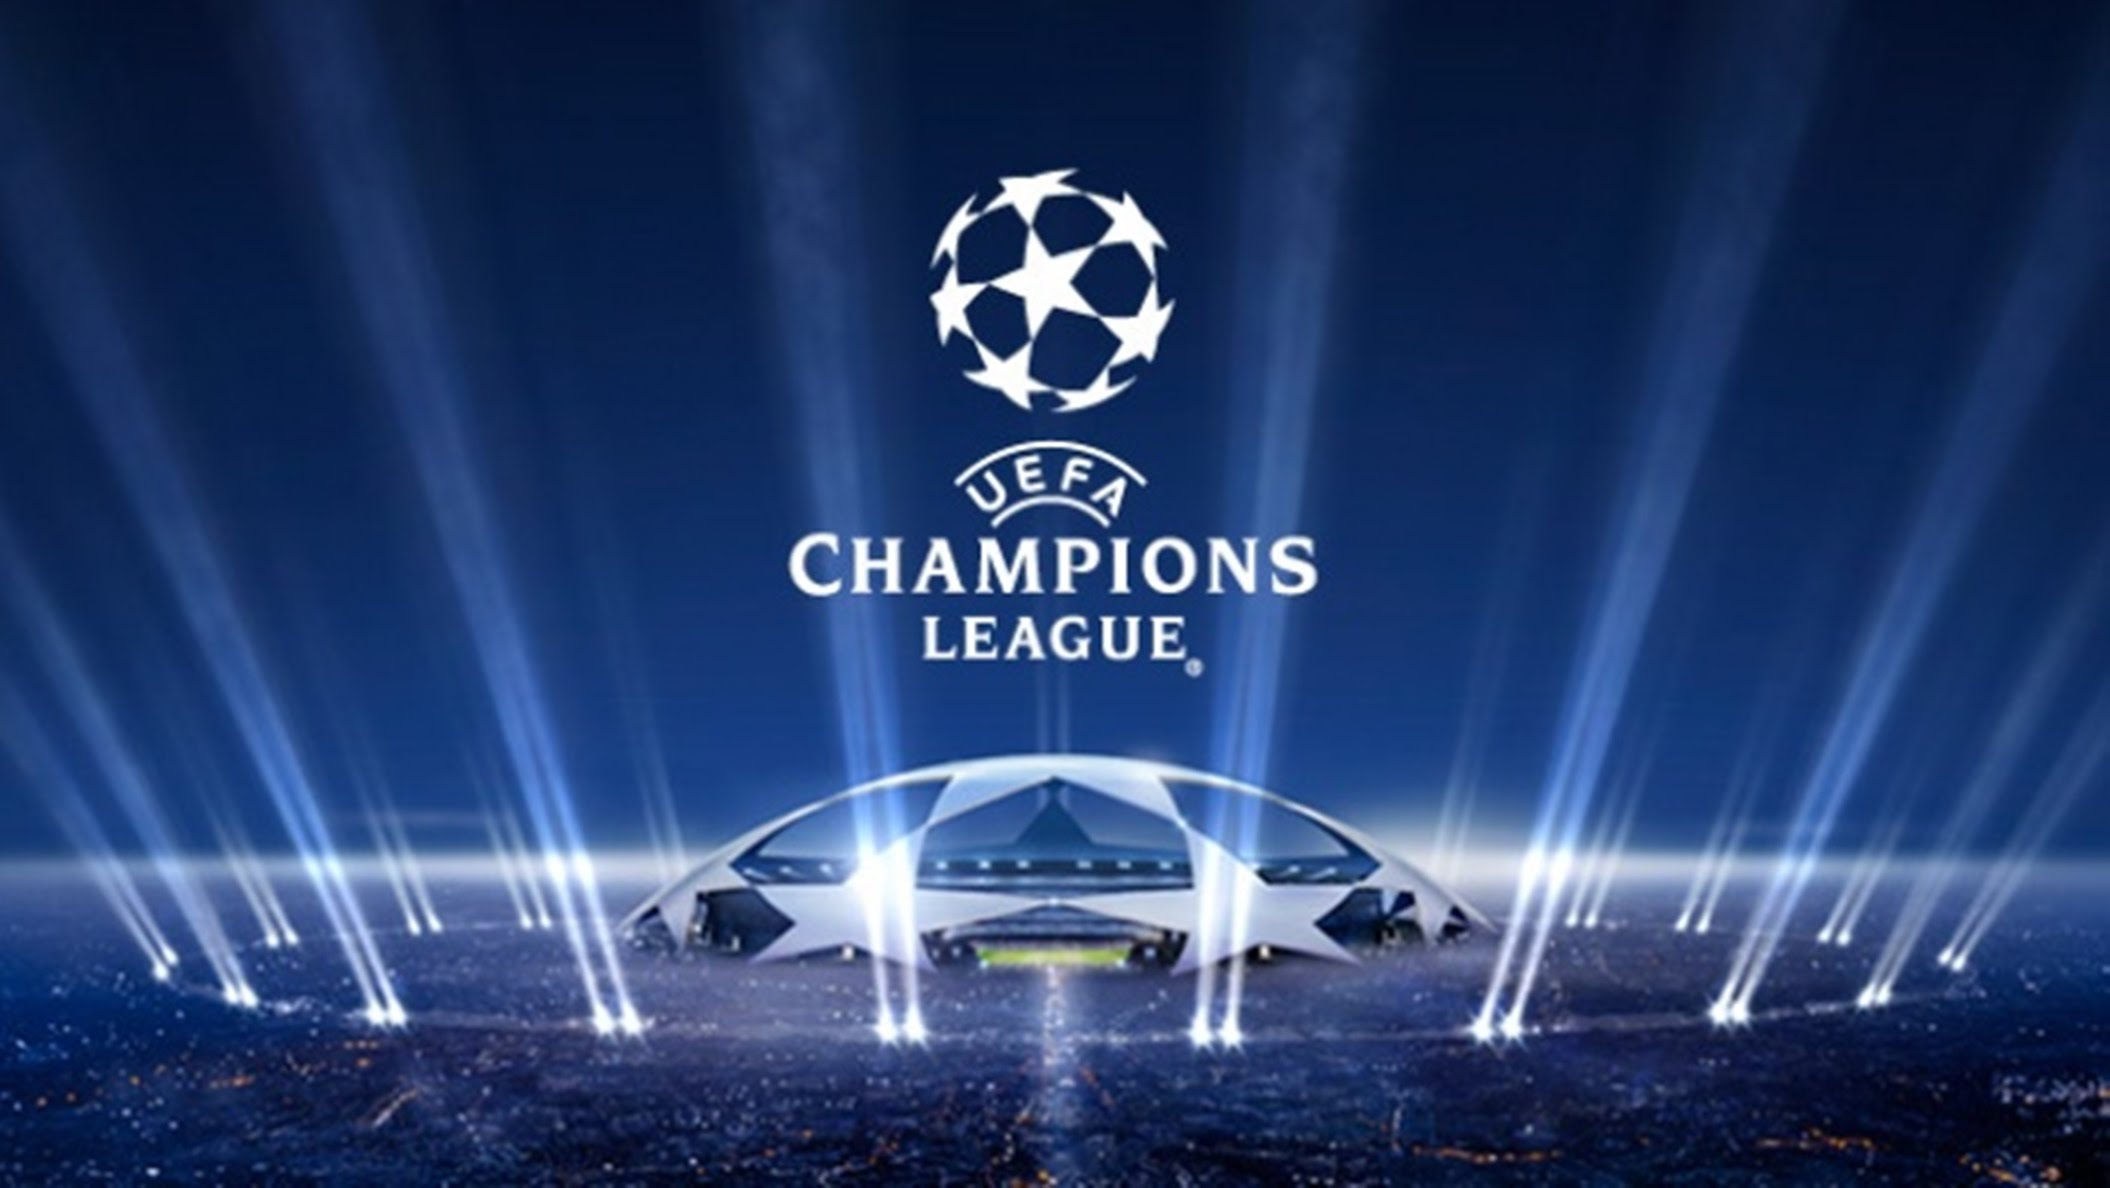 Champions League Round of 16